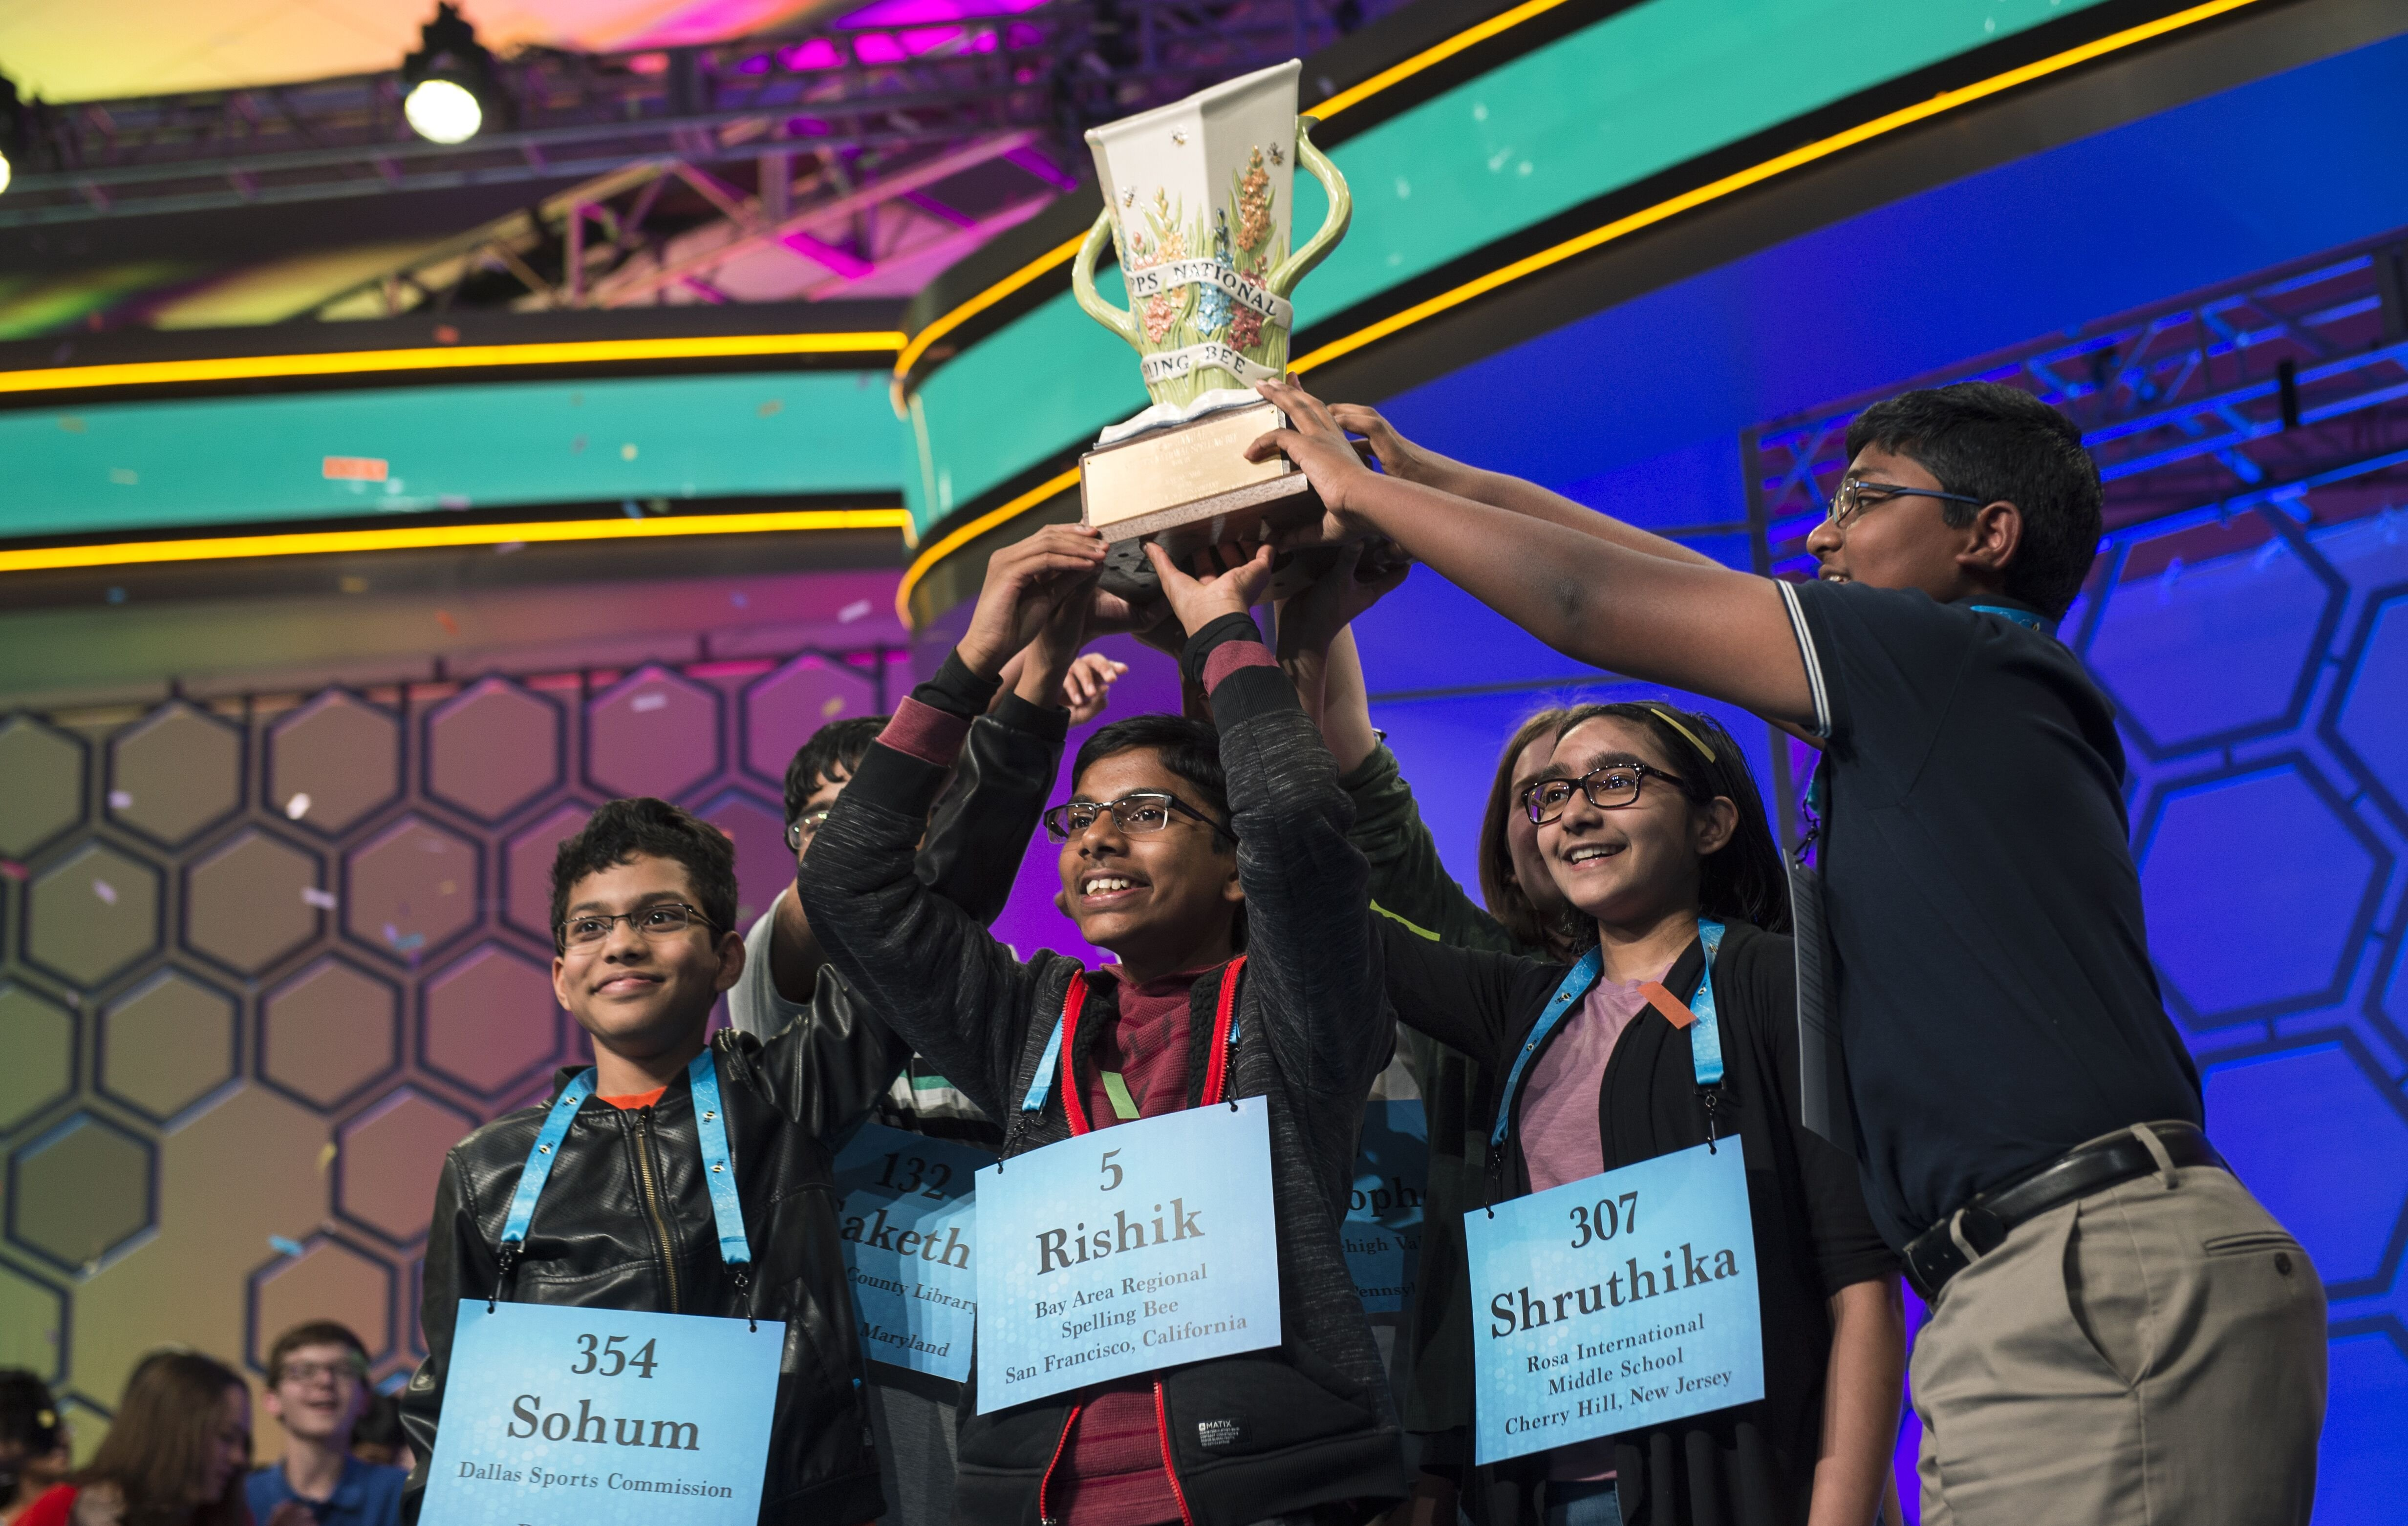 The eight co-champions celebrate after winning the Scripps National Spelling Bee on Thursday May 30, 2019 in Oxon Hill, Md | Photo: Getty Images